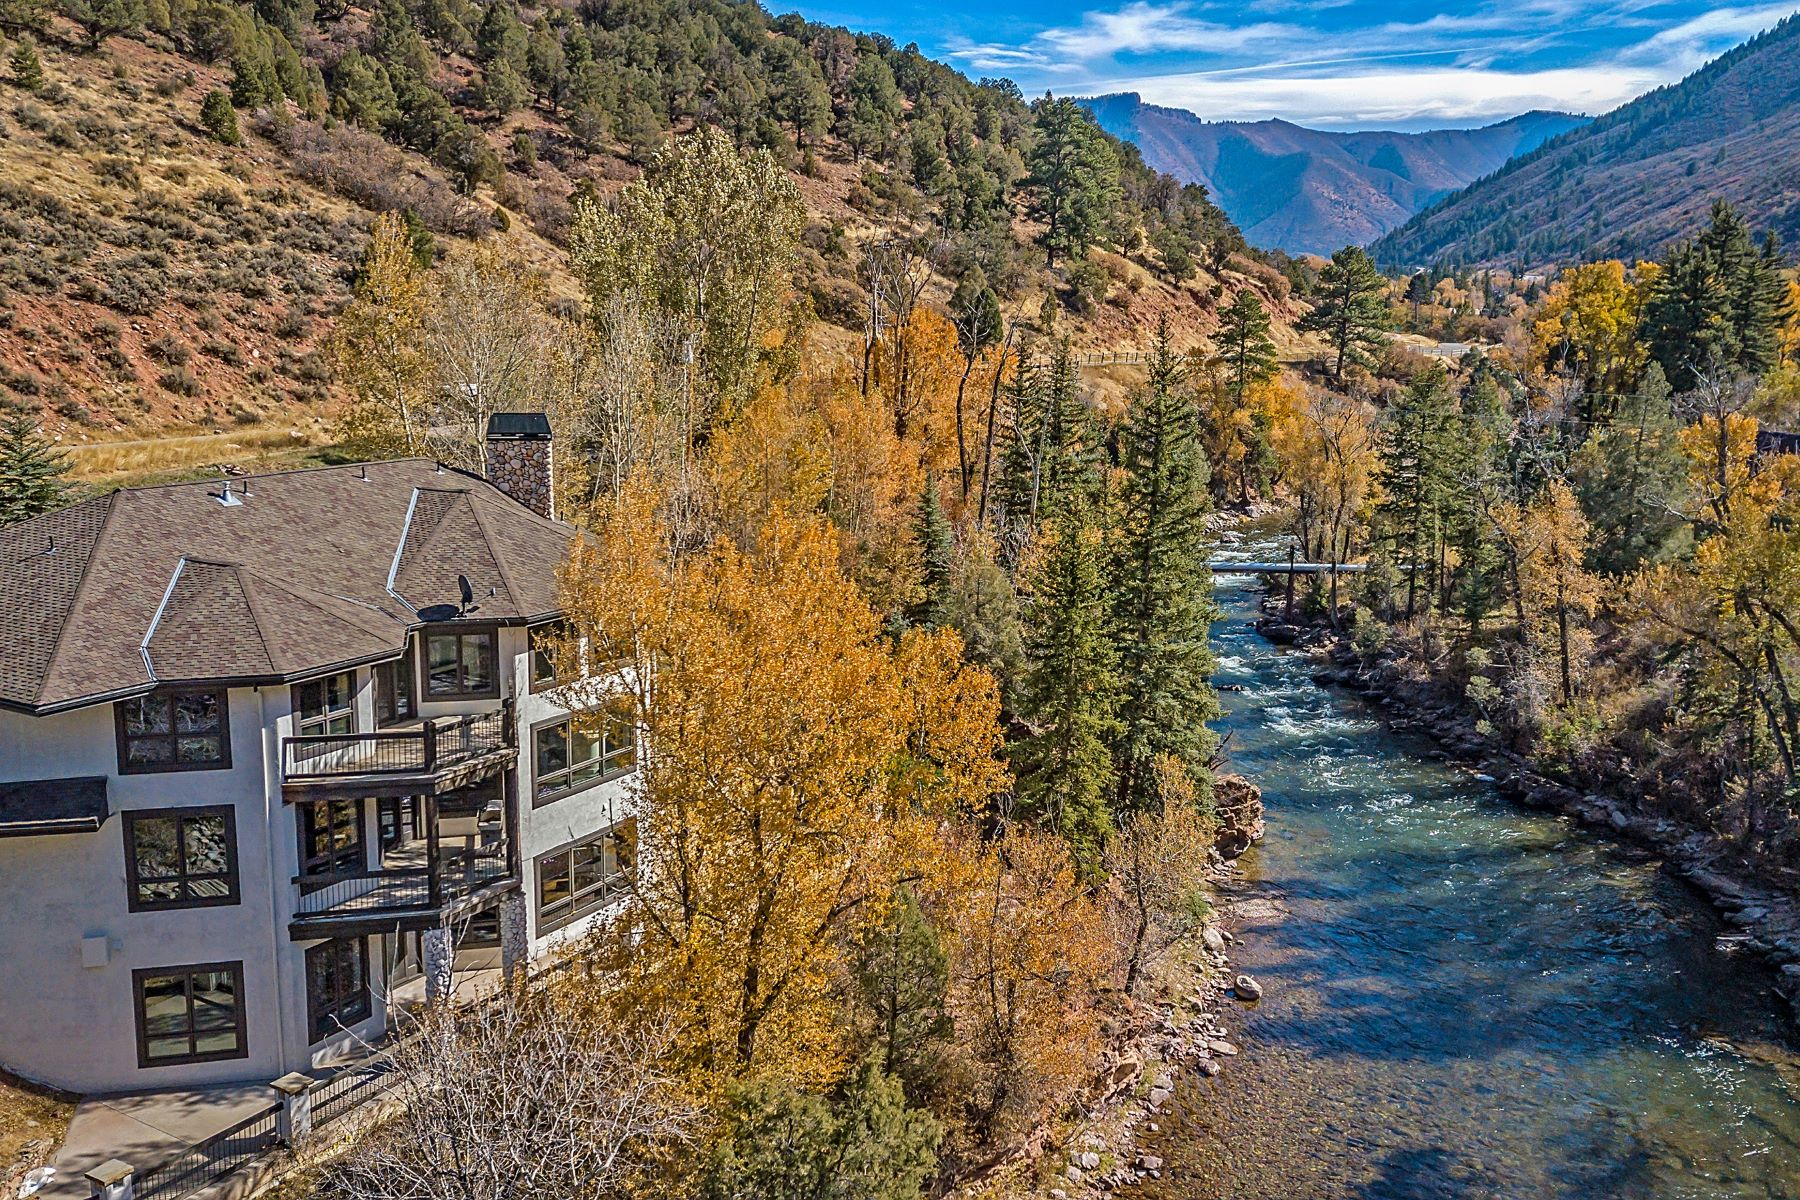 Single Family Homes for Sale at Renovated Riverfront Estate 50 N. River Road Snowmass, Colorado 81654 United States